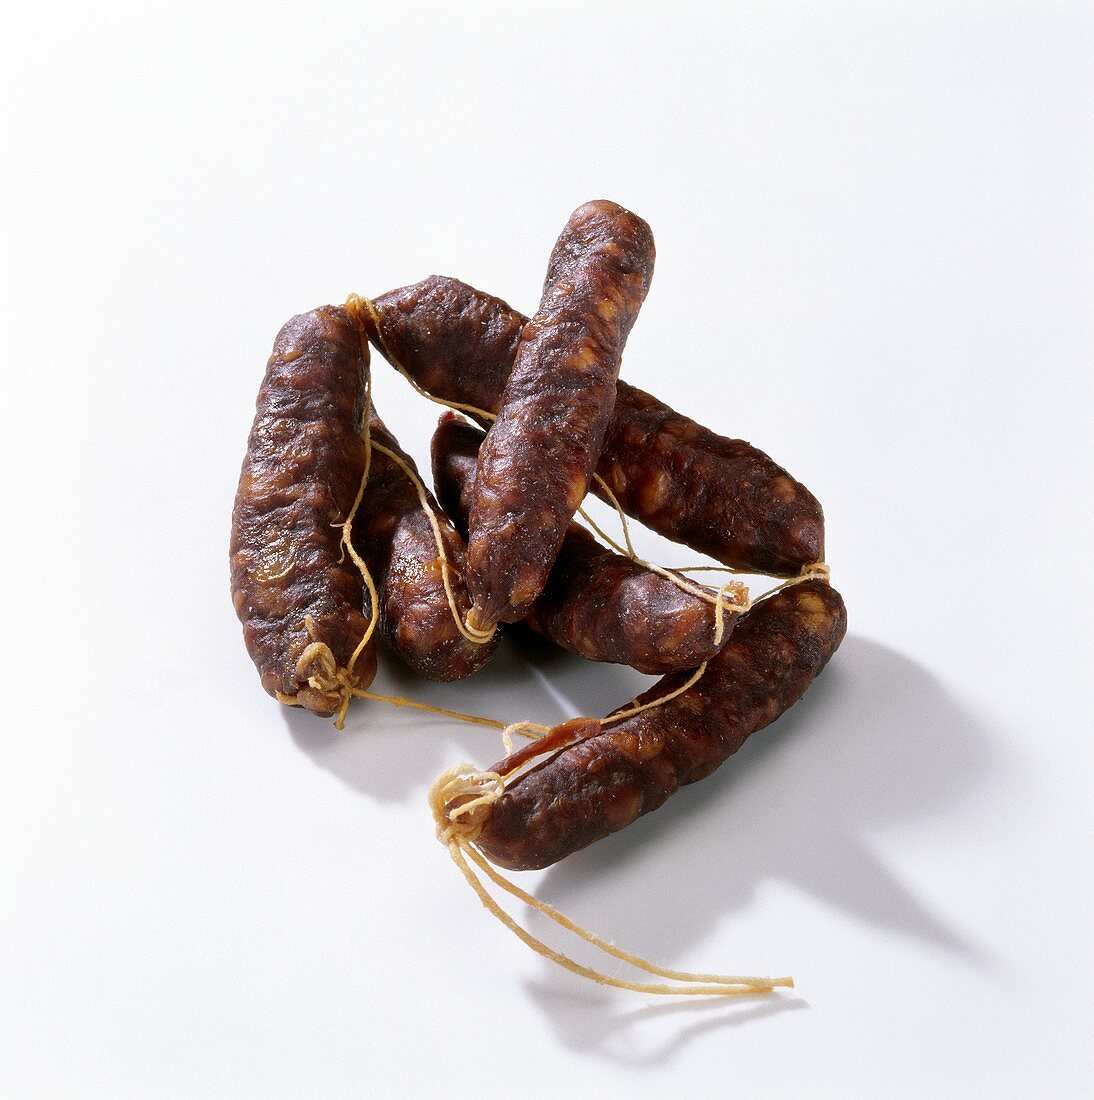 Hard cured sausages from Mallorca